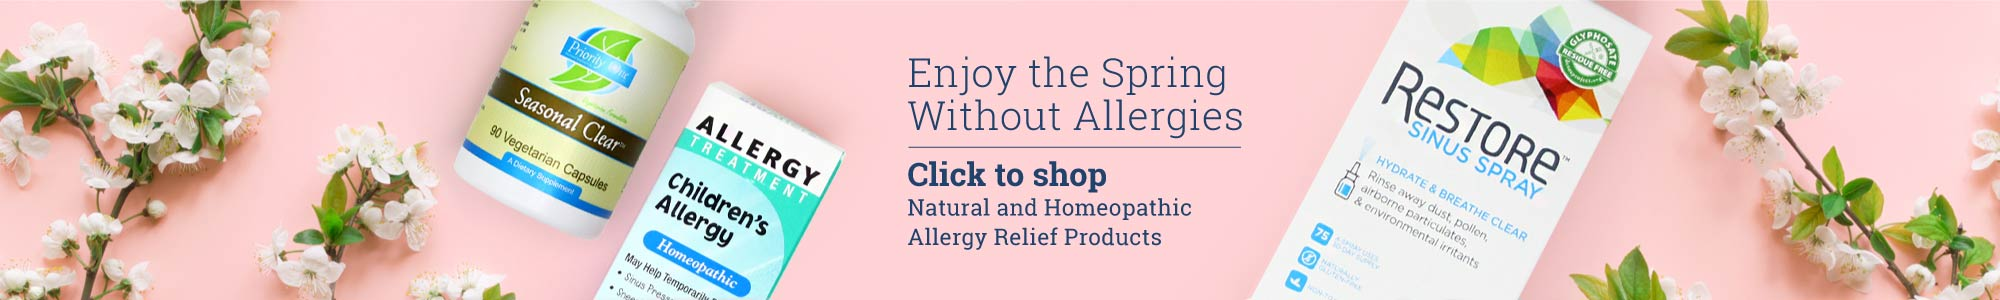 Enjoy the Spring Without Allergies Click to shop Natural and Homeopathic Allergy Relief Products